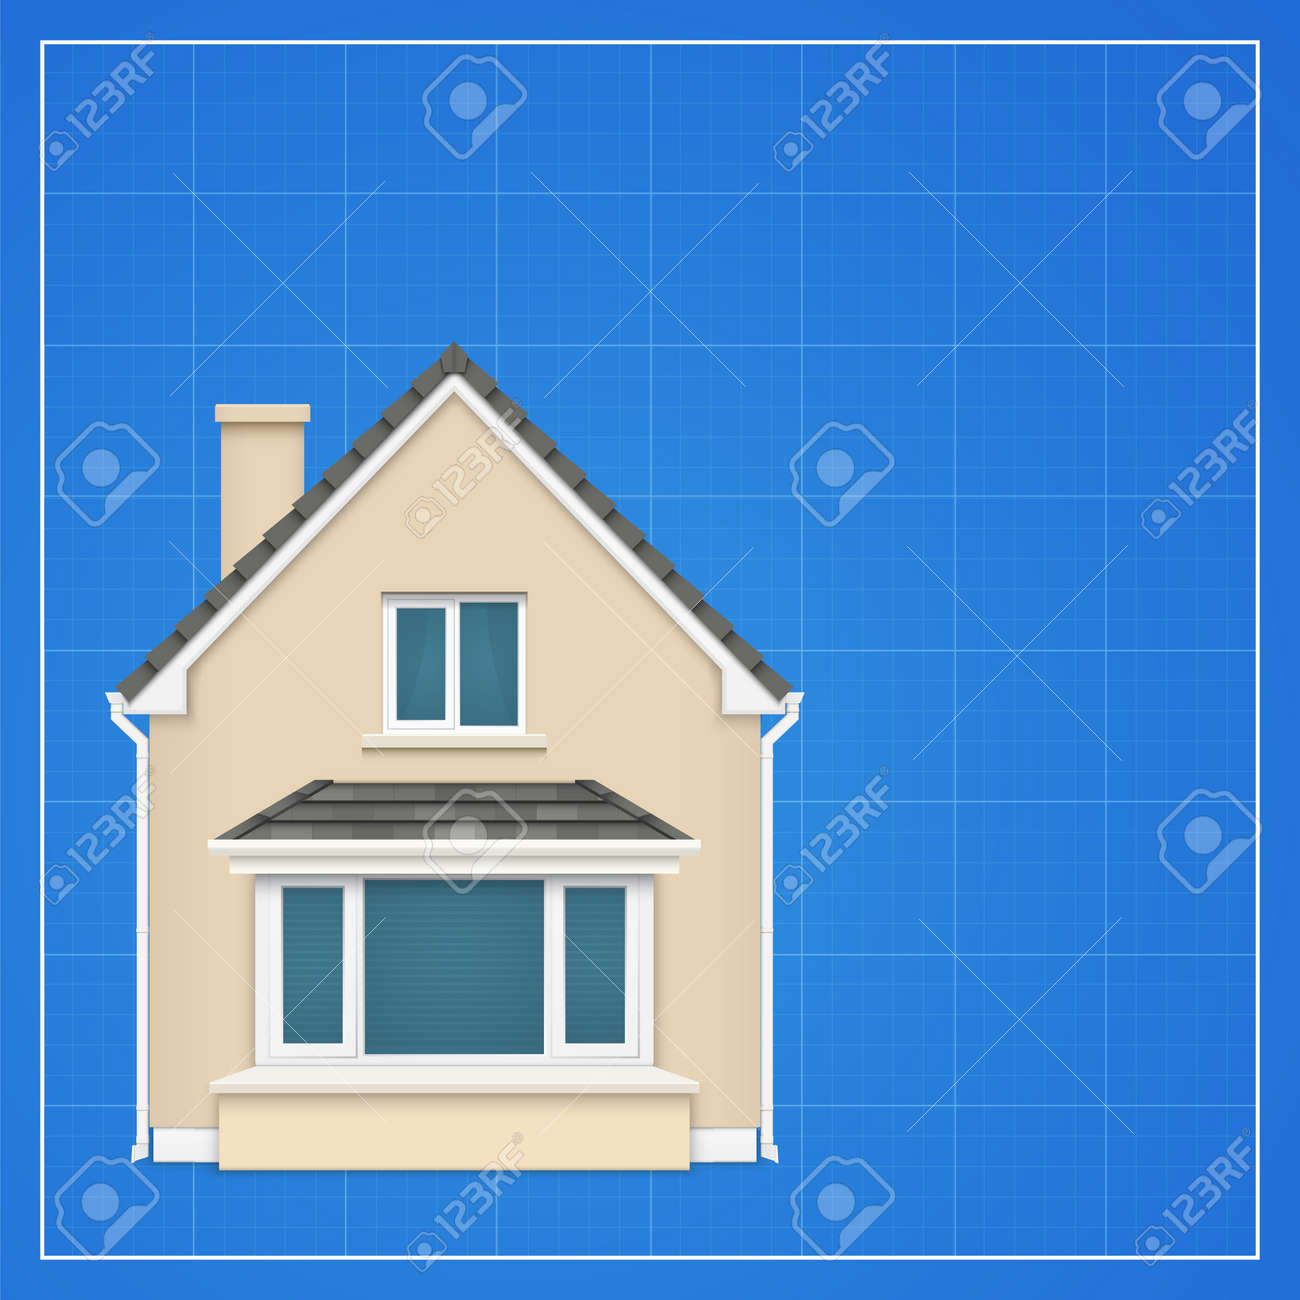 Architecture background with detailed house on a blueprint vector architecture background with detailed house on a blueprint vector illustration stock vector 31599951 malvernweather Images